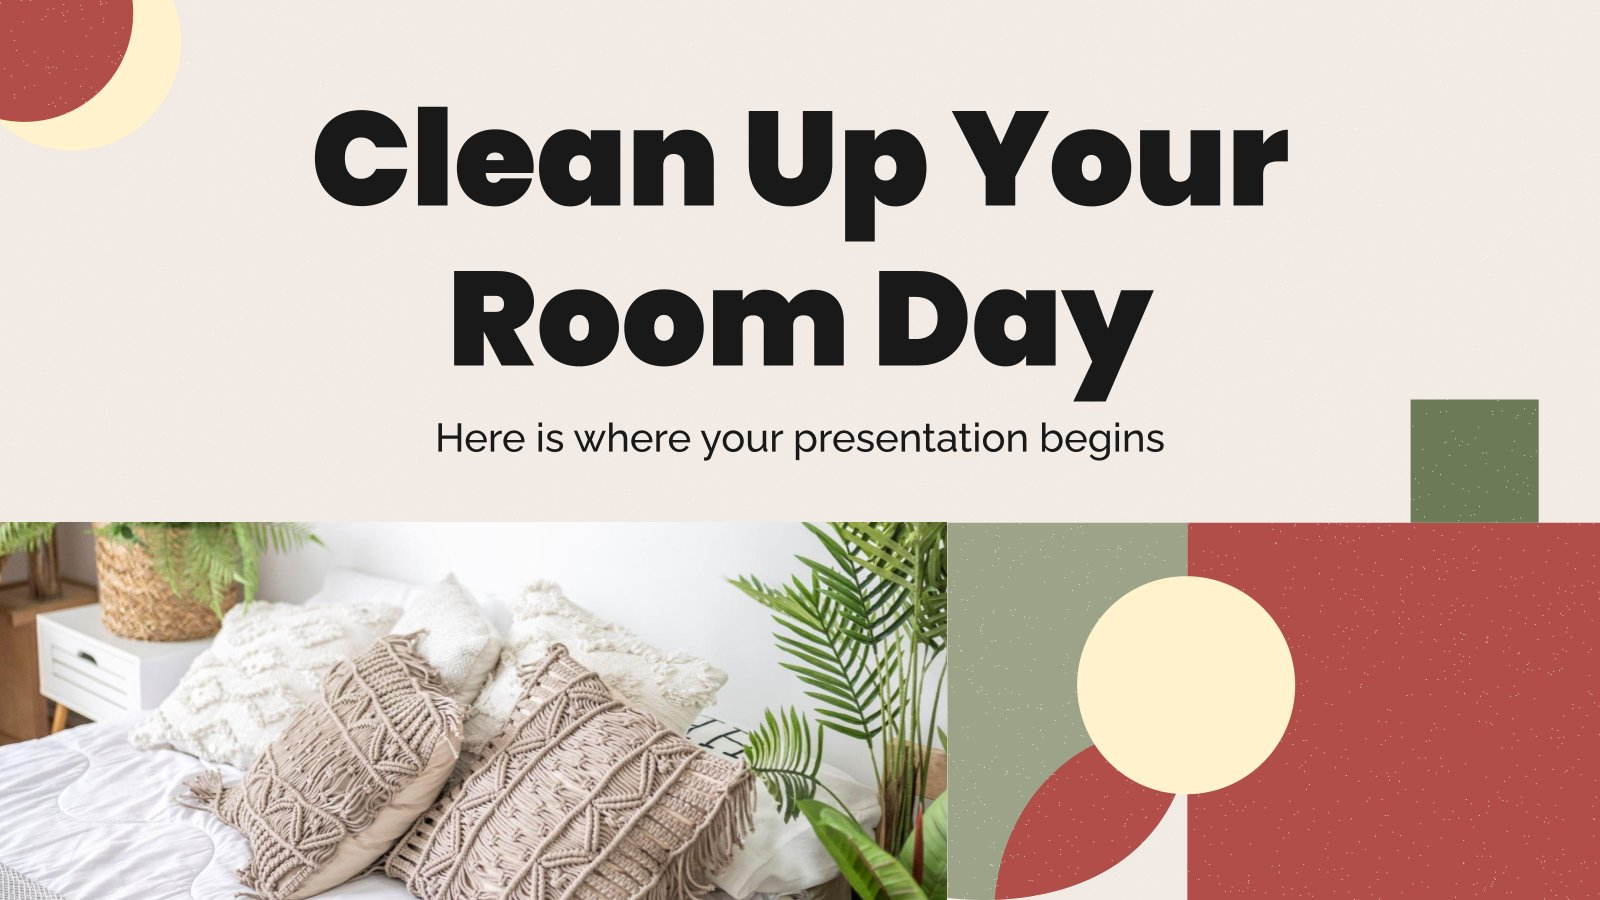 Clean up Your Room Day presentation template